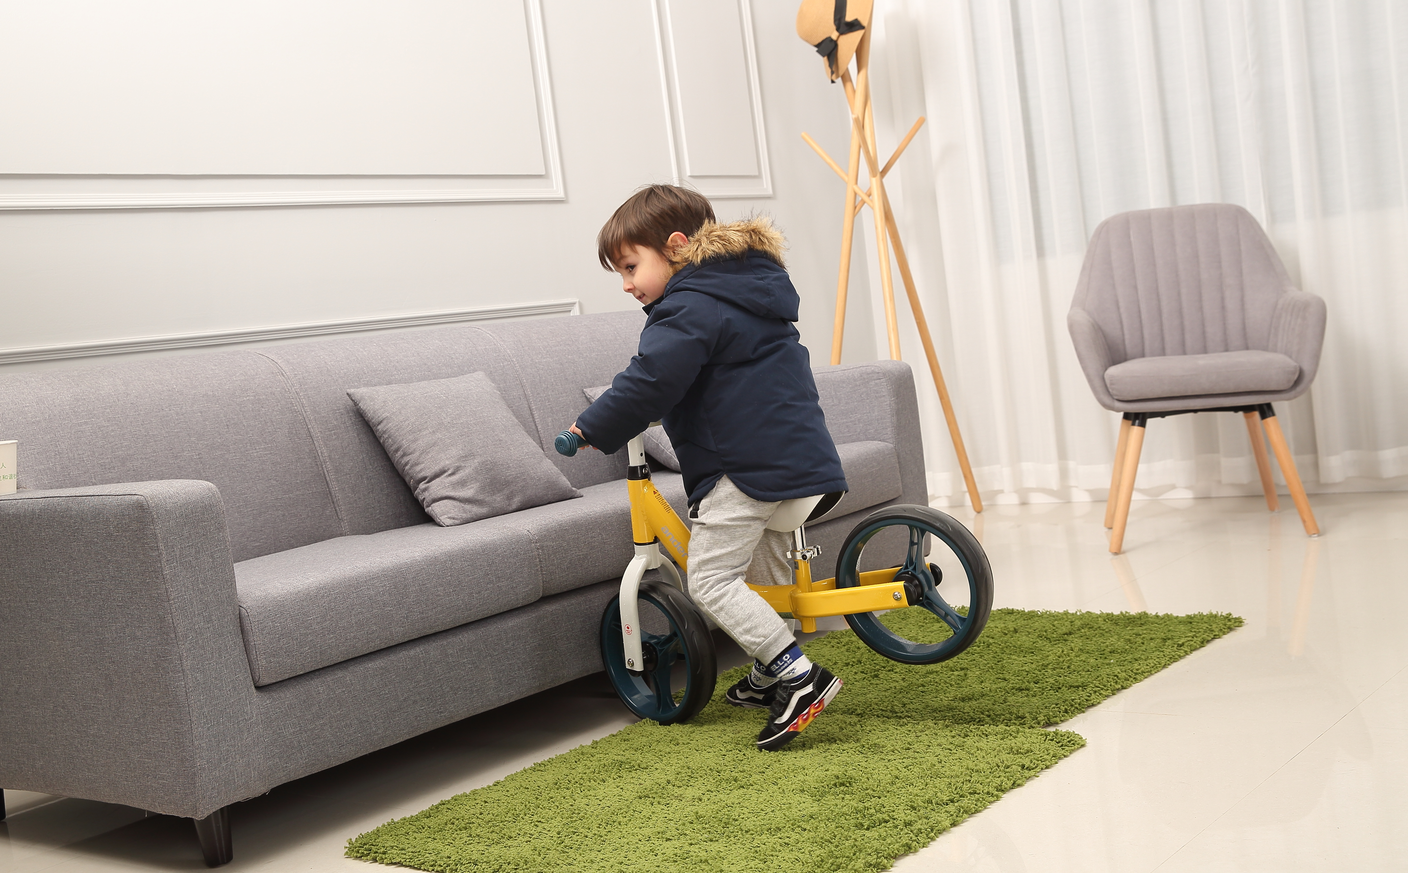 kid's toy bicycle